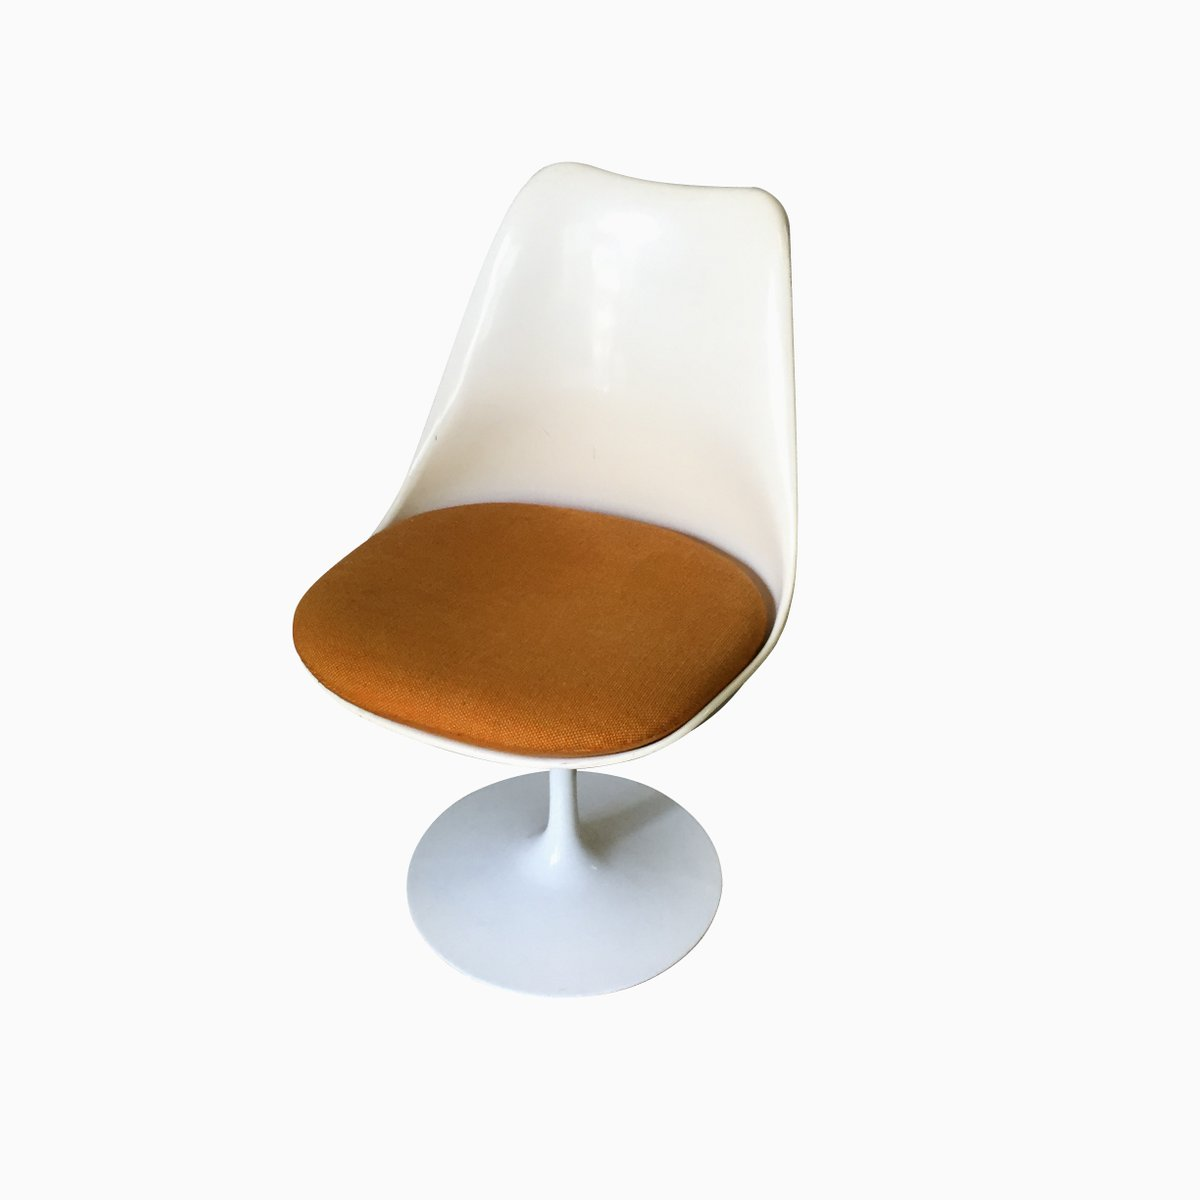 Uncategorized Eero Saarinen Tulip Chair vintage tulip chair by eero saarinen for sale at pamono saarinen